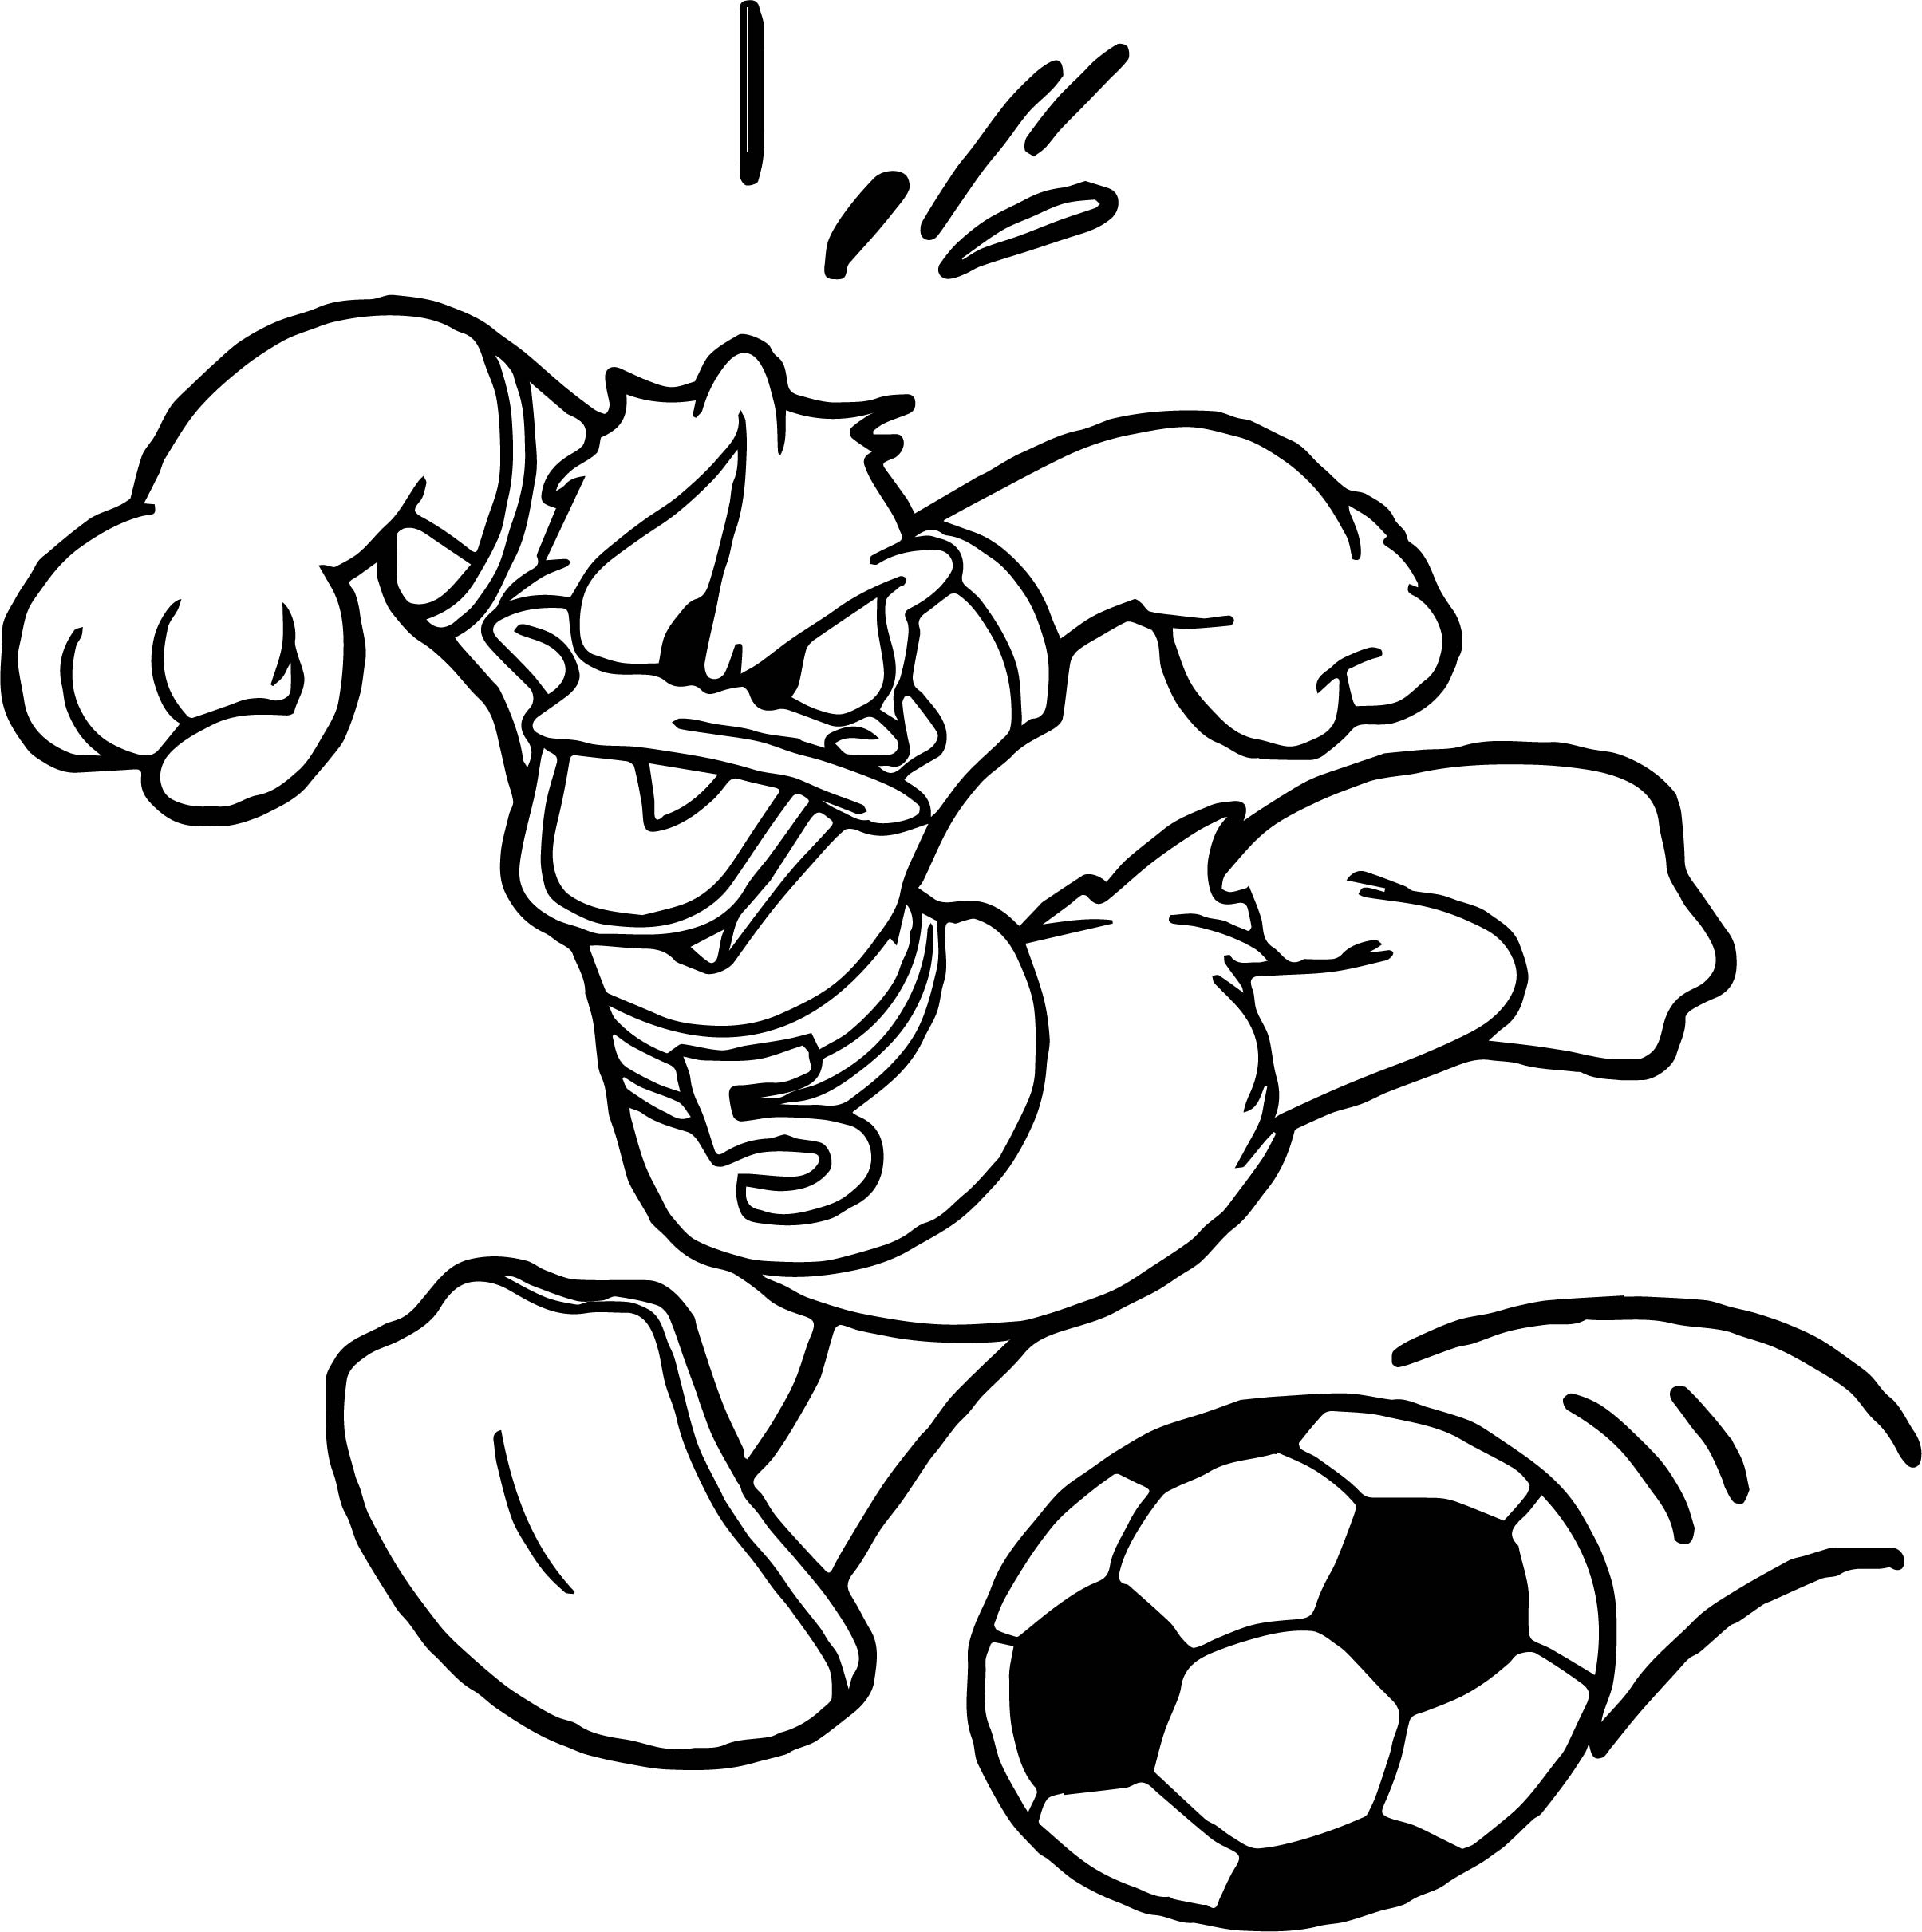 Donald Soccer Playing Football Coloring Page